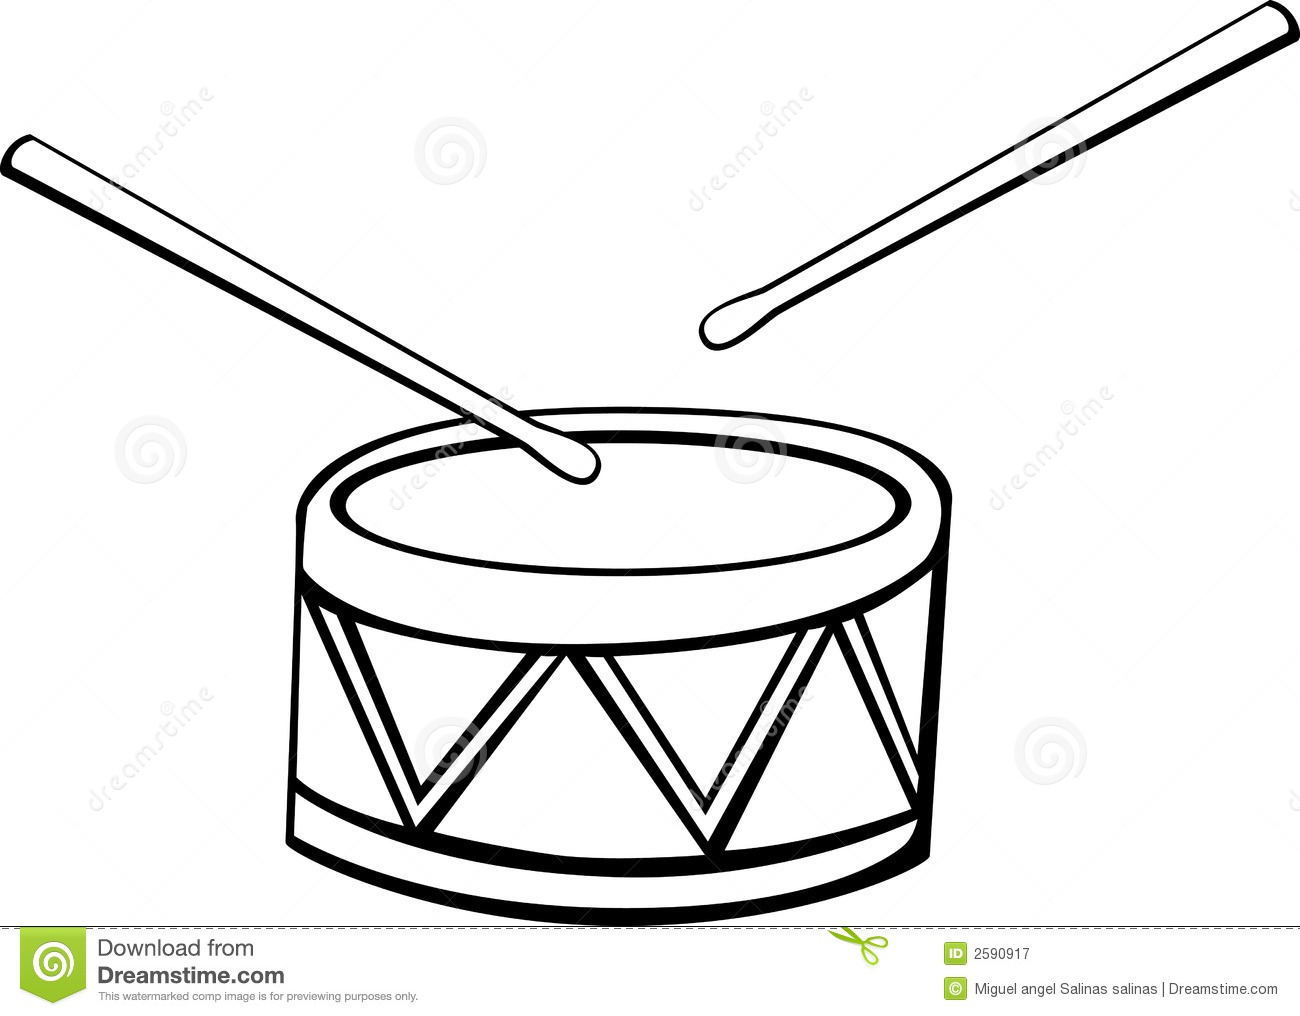 snare drum clipart black and white clipart panda free snare drum clipart snare drum clipart black and white